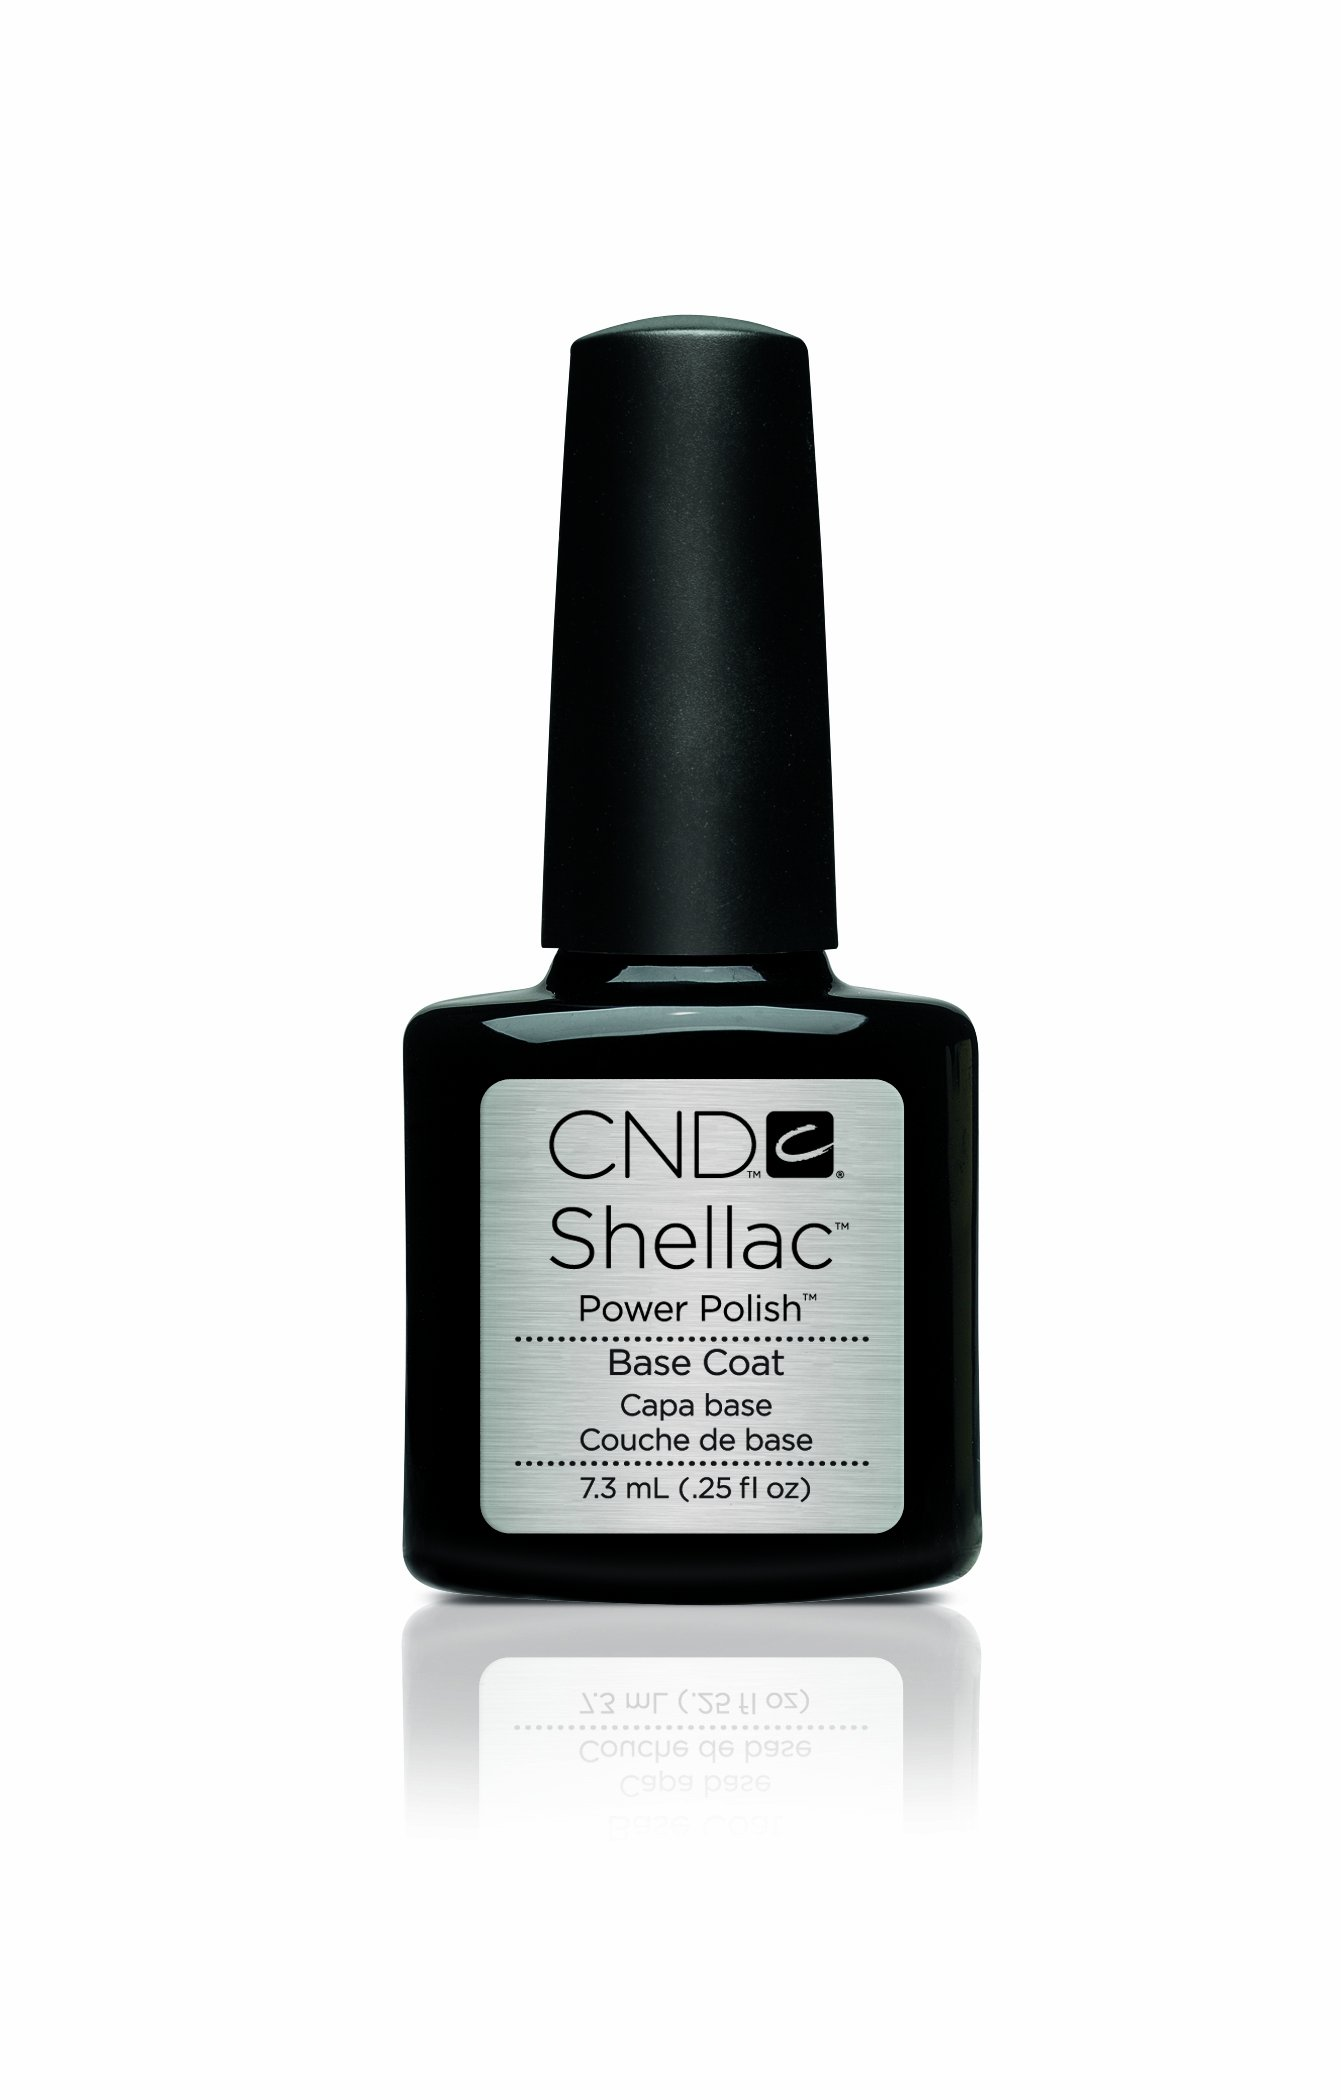 Who made the shellac is it true that after his nails are in terrible condition 29